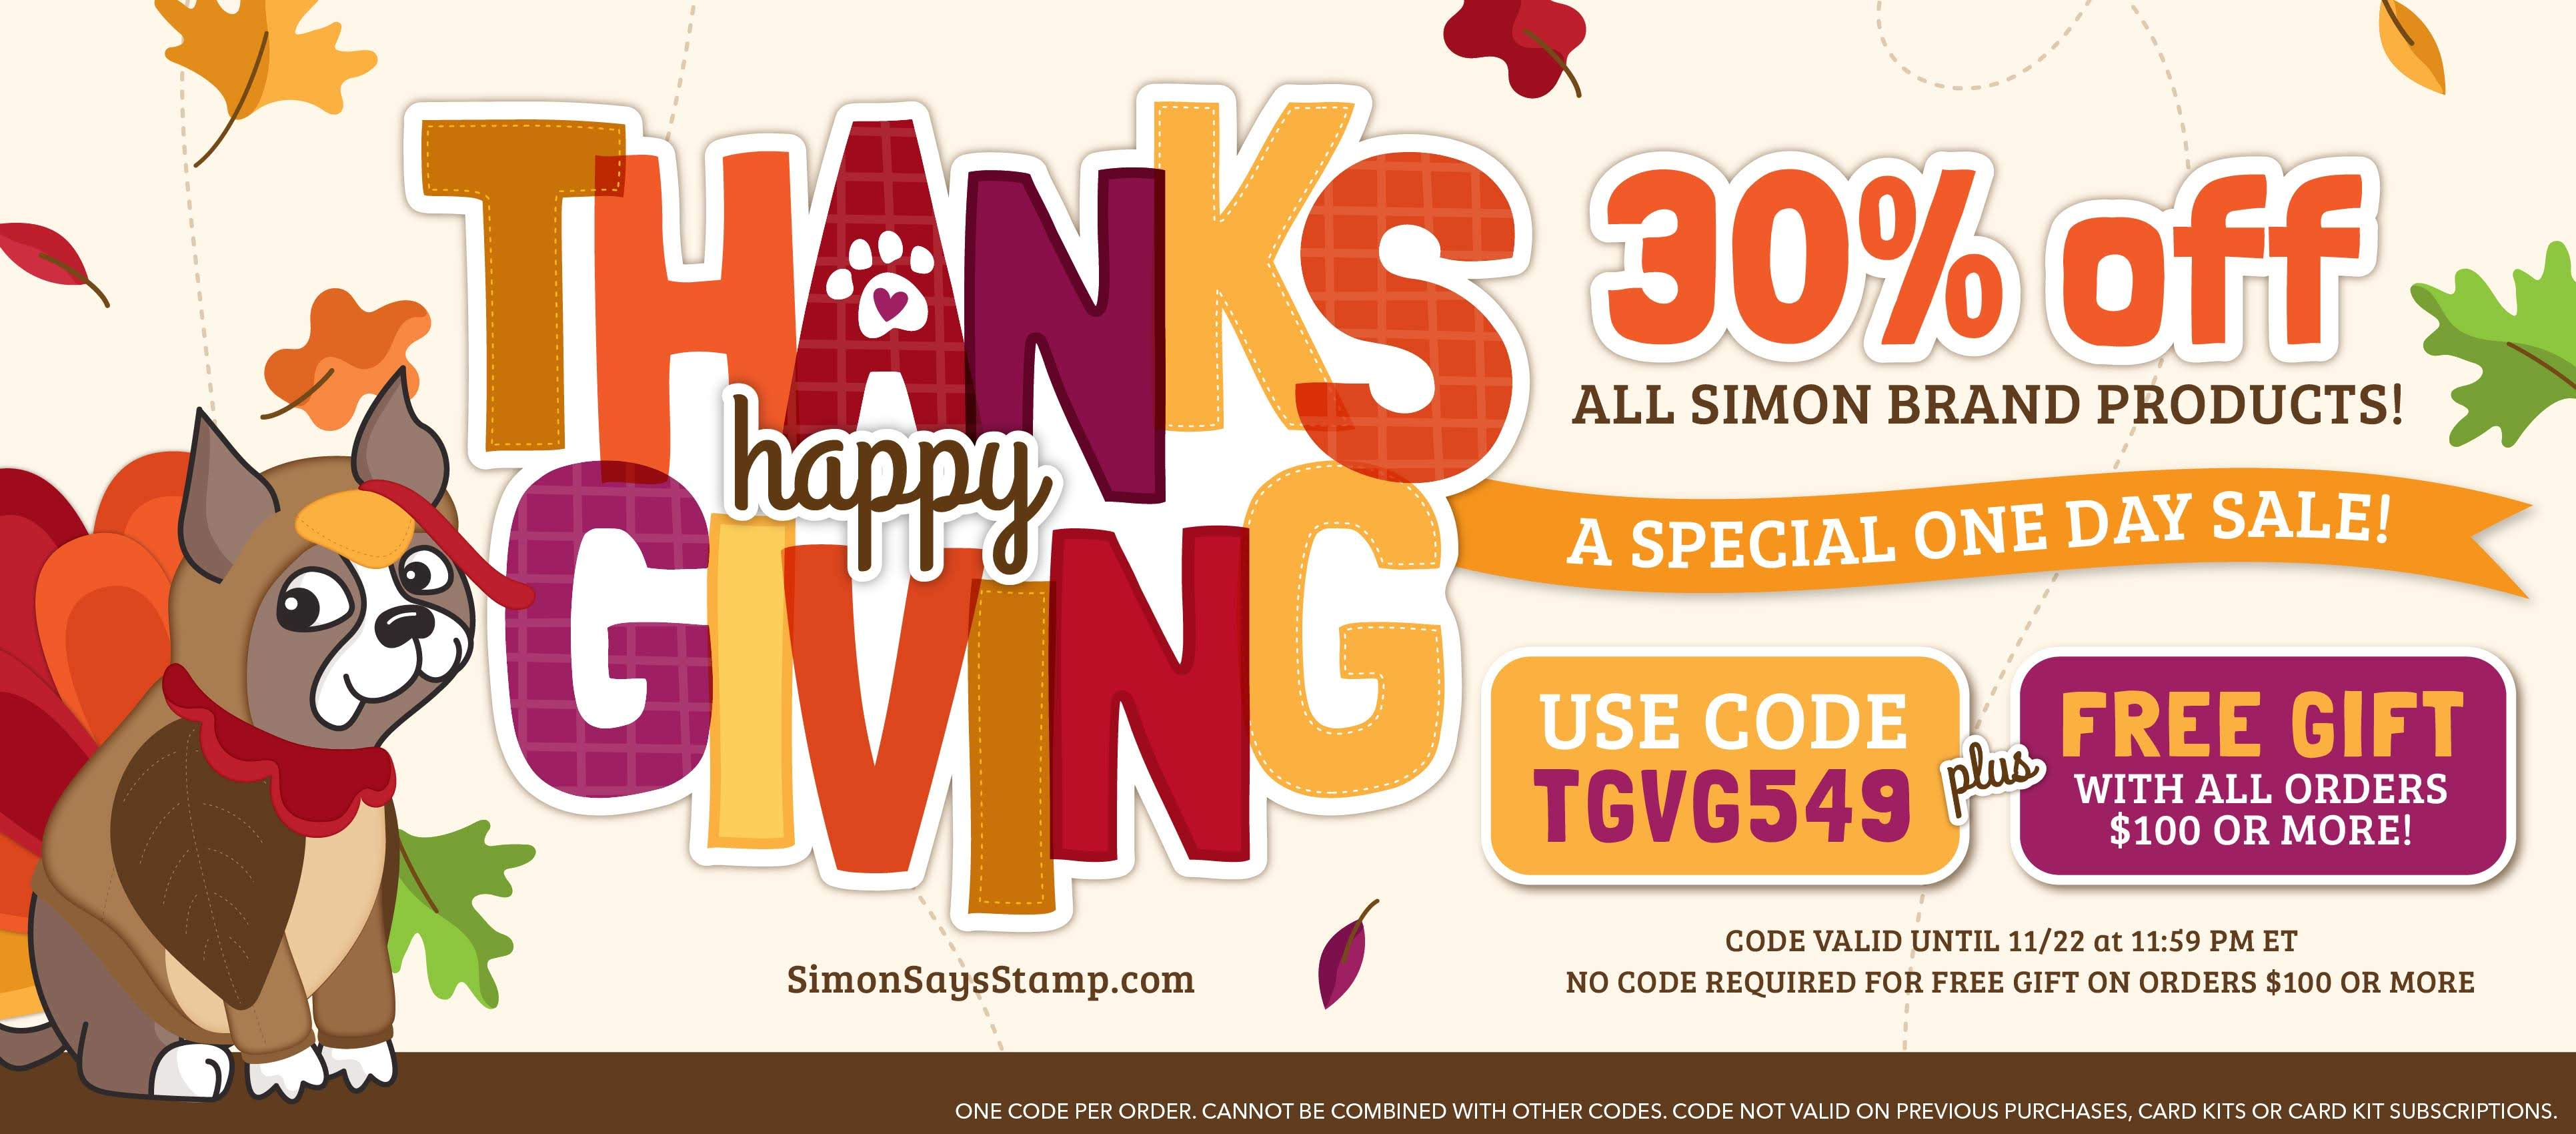 Thanksgiving 30% off Sale